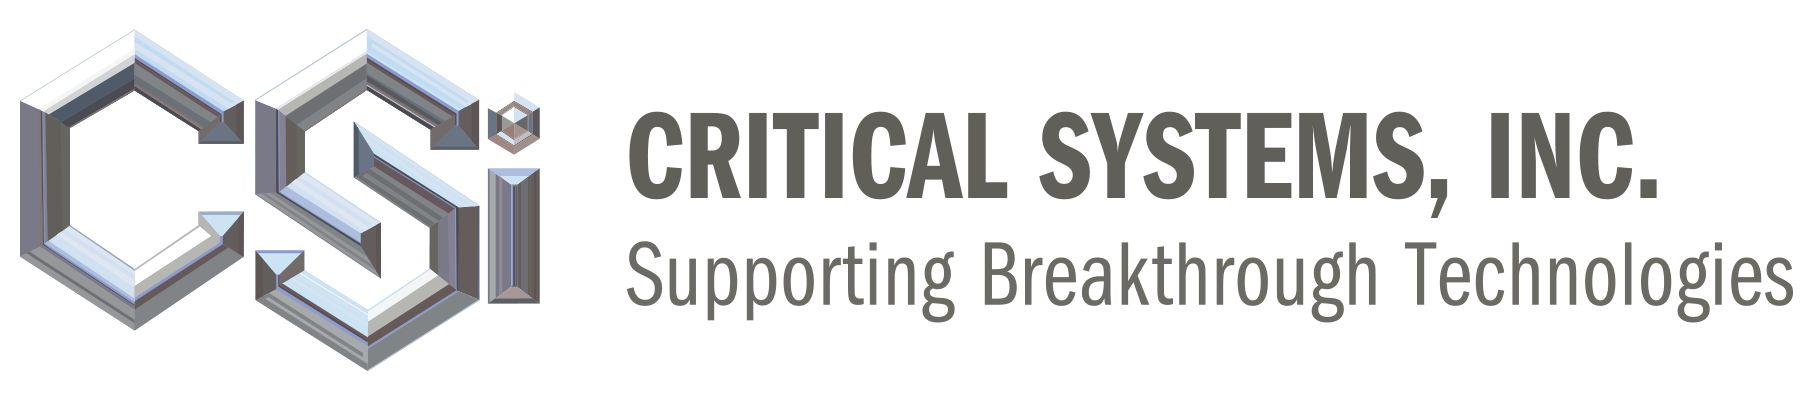 Critical Systems, Inc. Logo